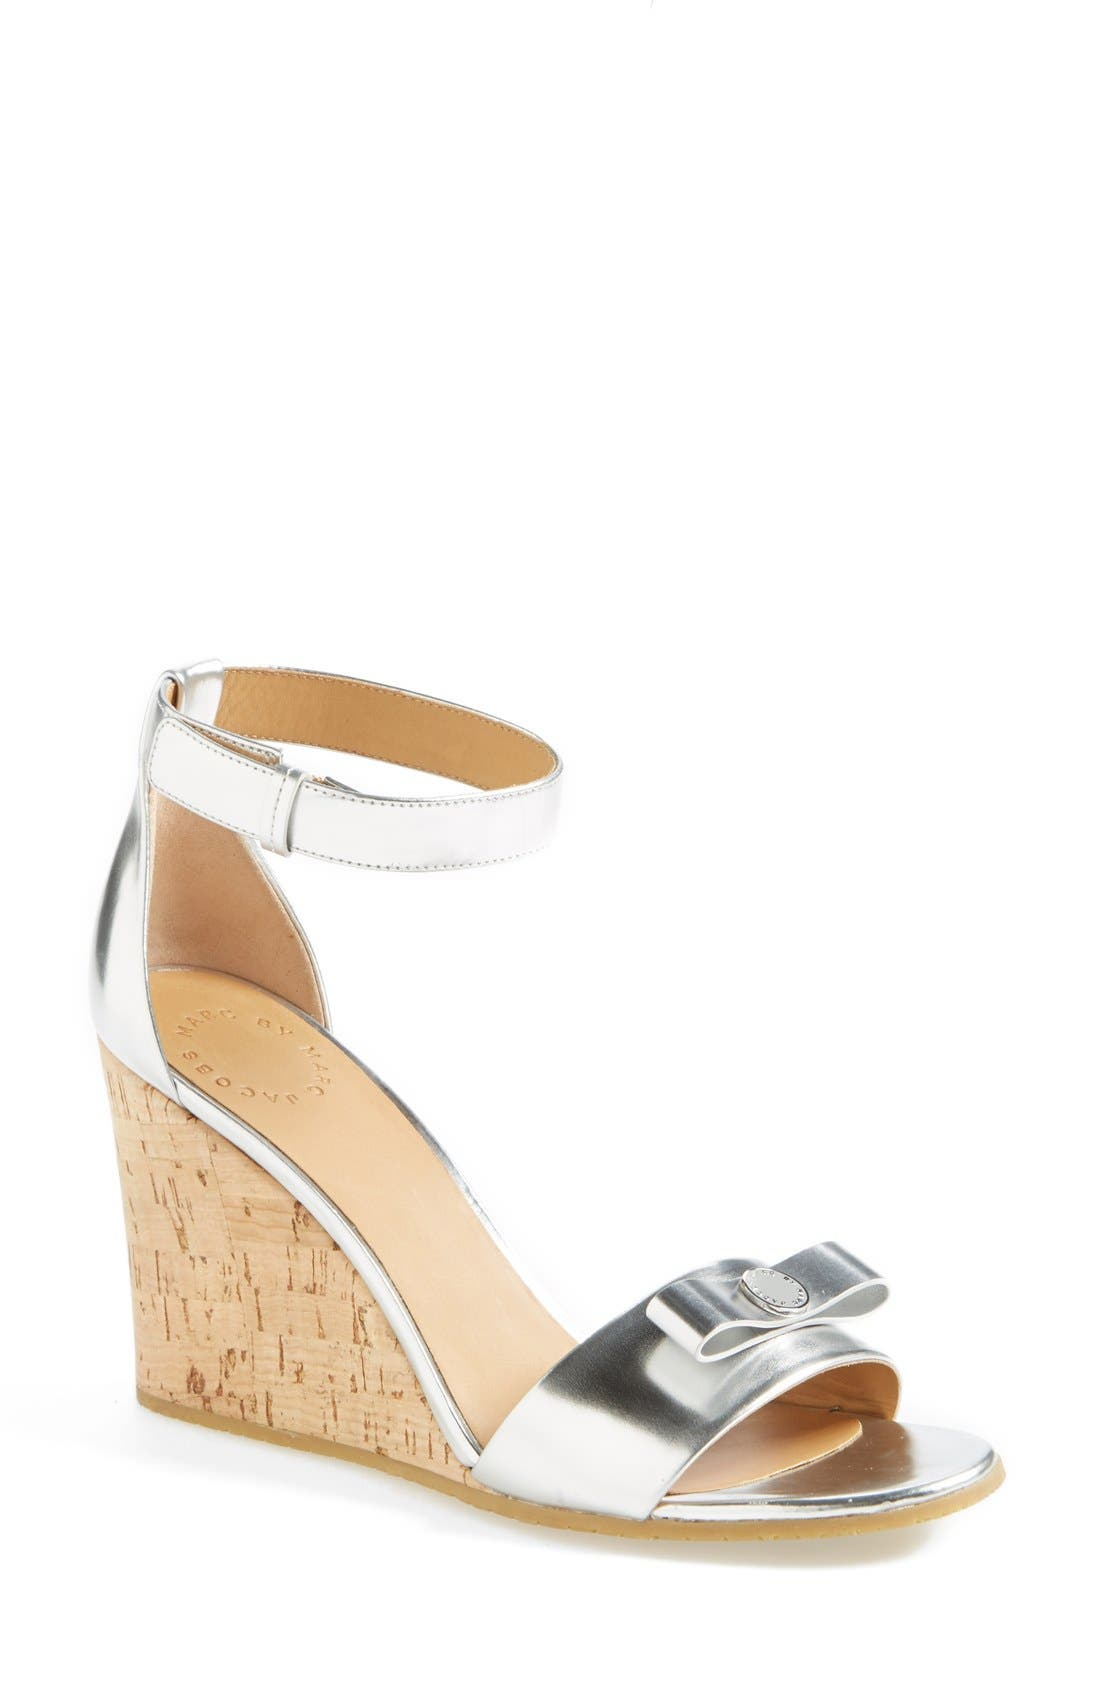 MARC BY MARC JACOBS 'Logo Disc' Sandal,                             Main thumbnail 1, color,                             040